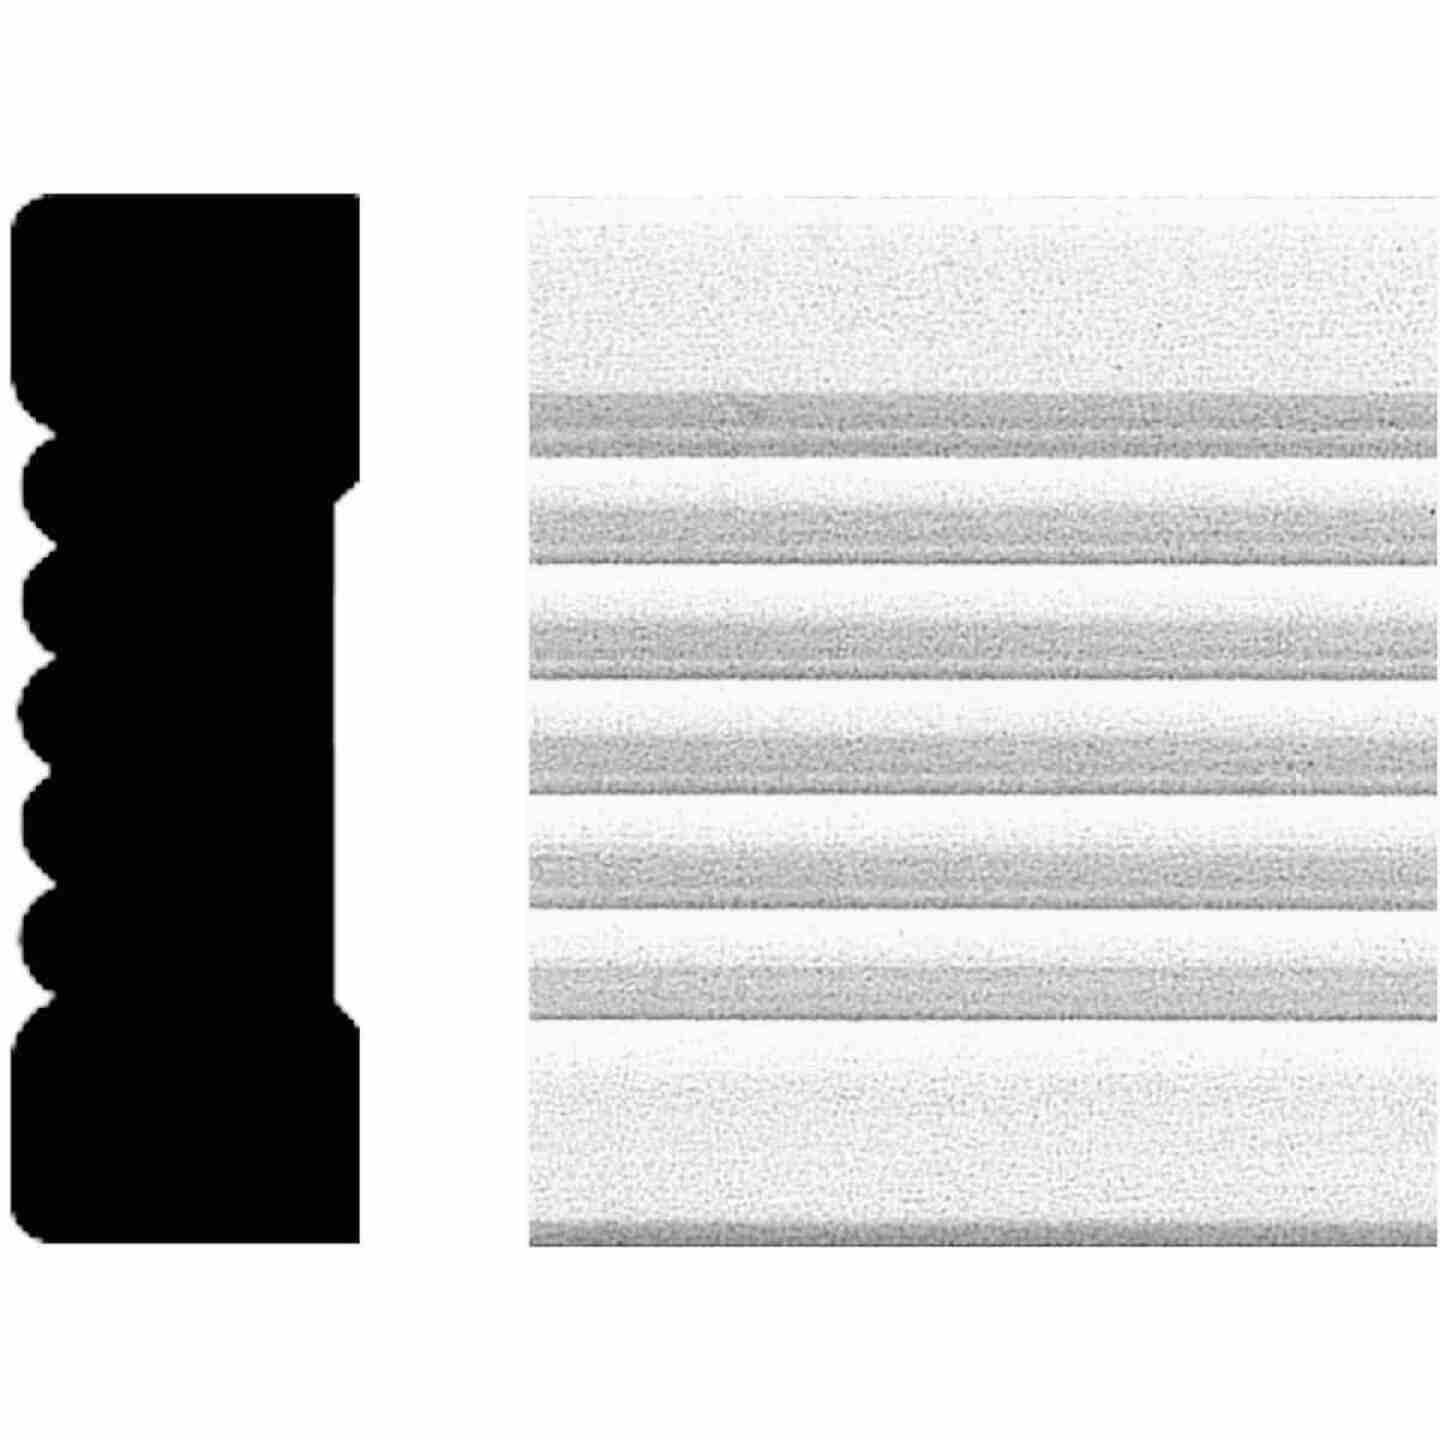 House of Fara 3/4 In. W. x 2-1/4 In. H. x 8 Ft. L. White MDF Fluted Casing Molding Image 1